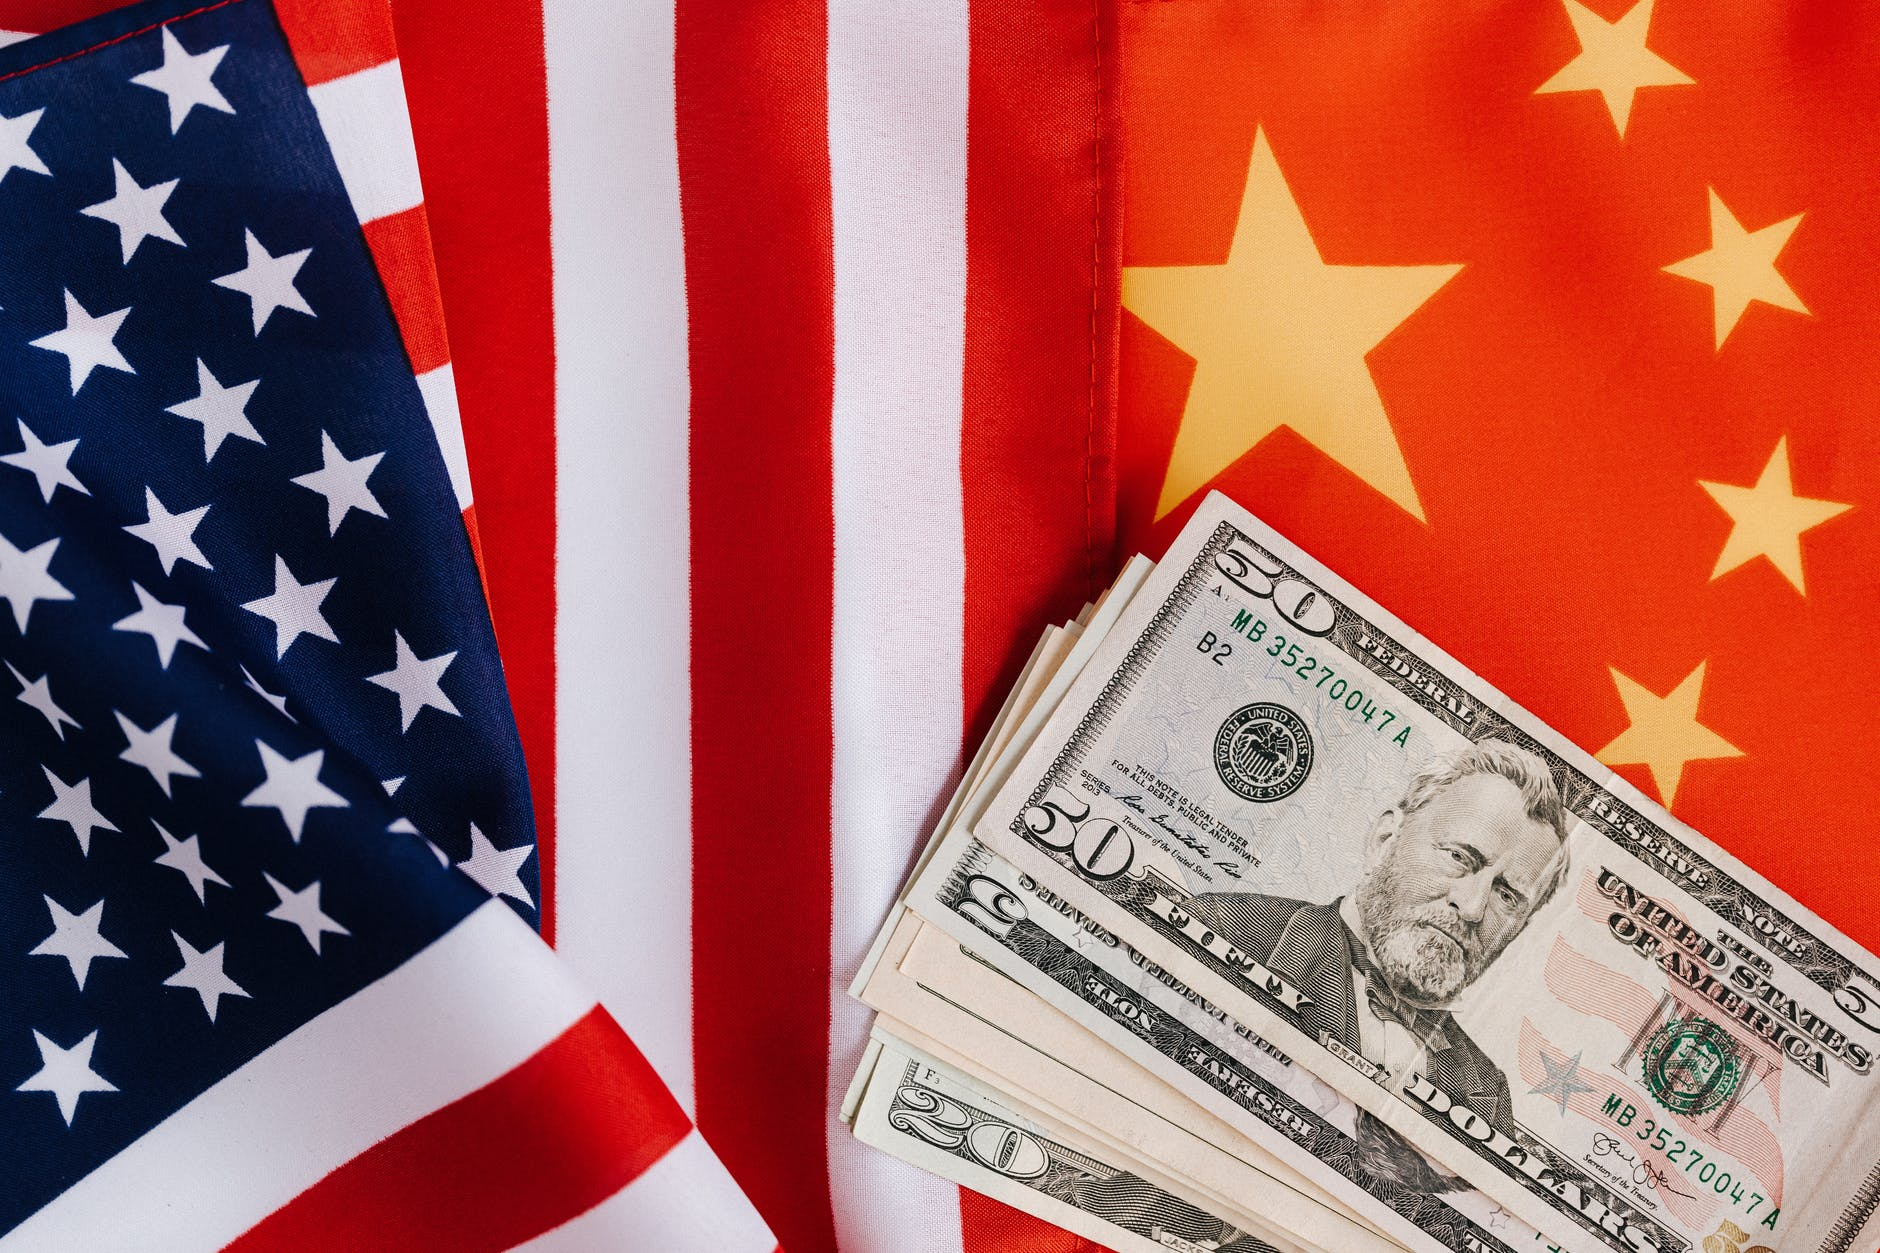 China's Digital Yuan Is the Reason behind the Latest Private Crypto Crackdown